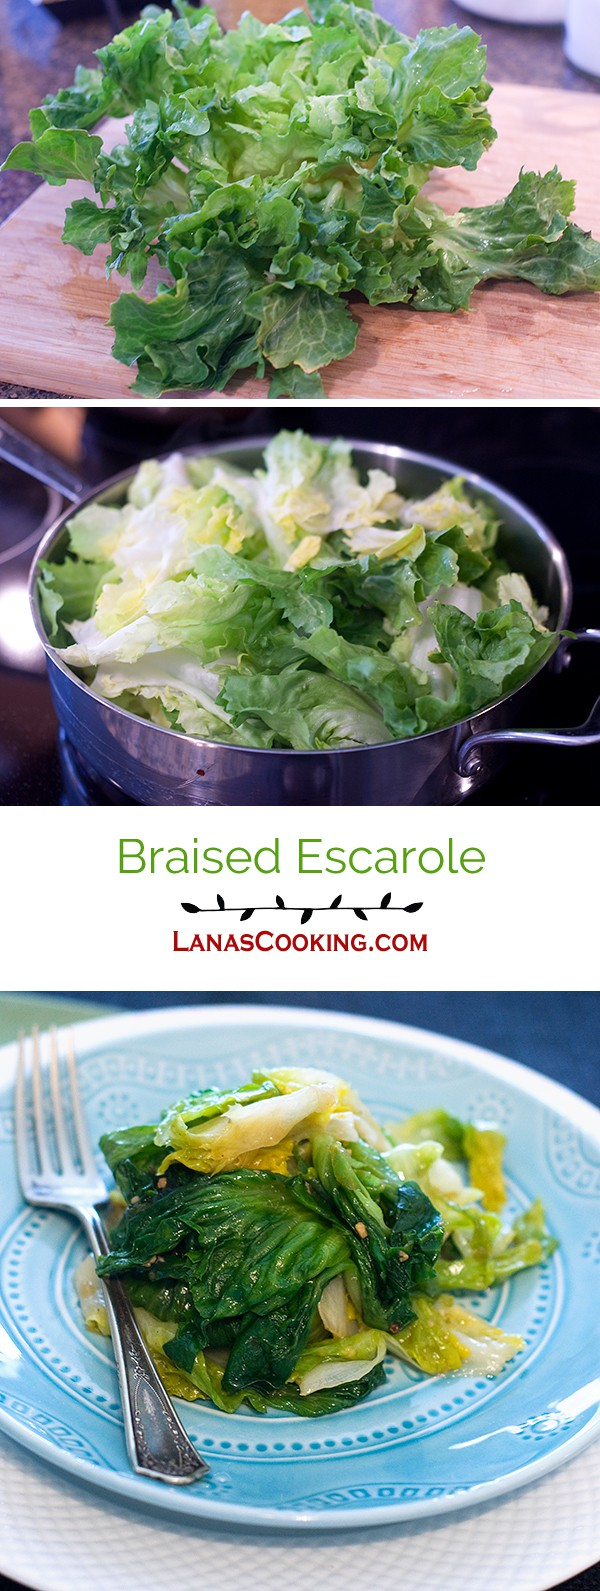 Lovely green escarole braised with olive oil, garlic, red pepper, and lemon juice. From @NevrEnoughThyme https://www.lanascooking.com/braised-escarole